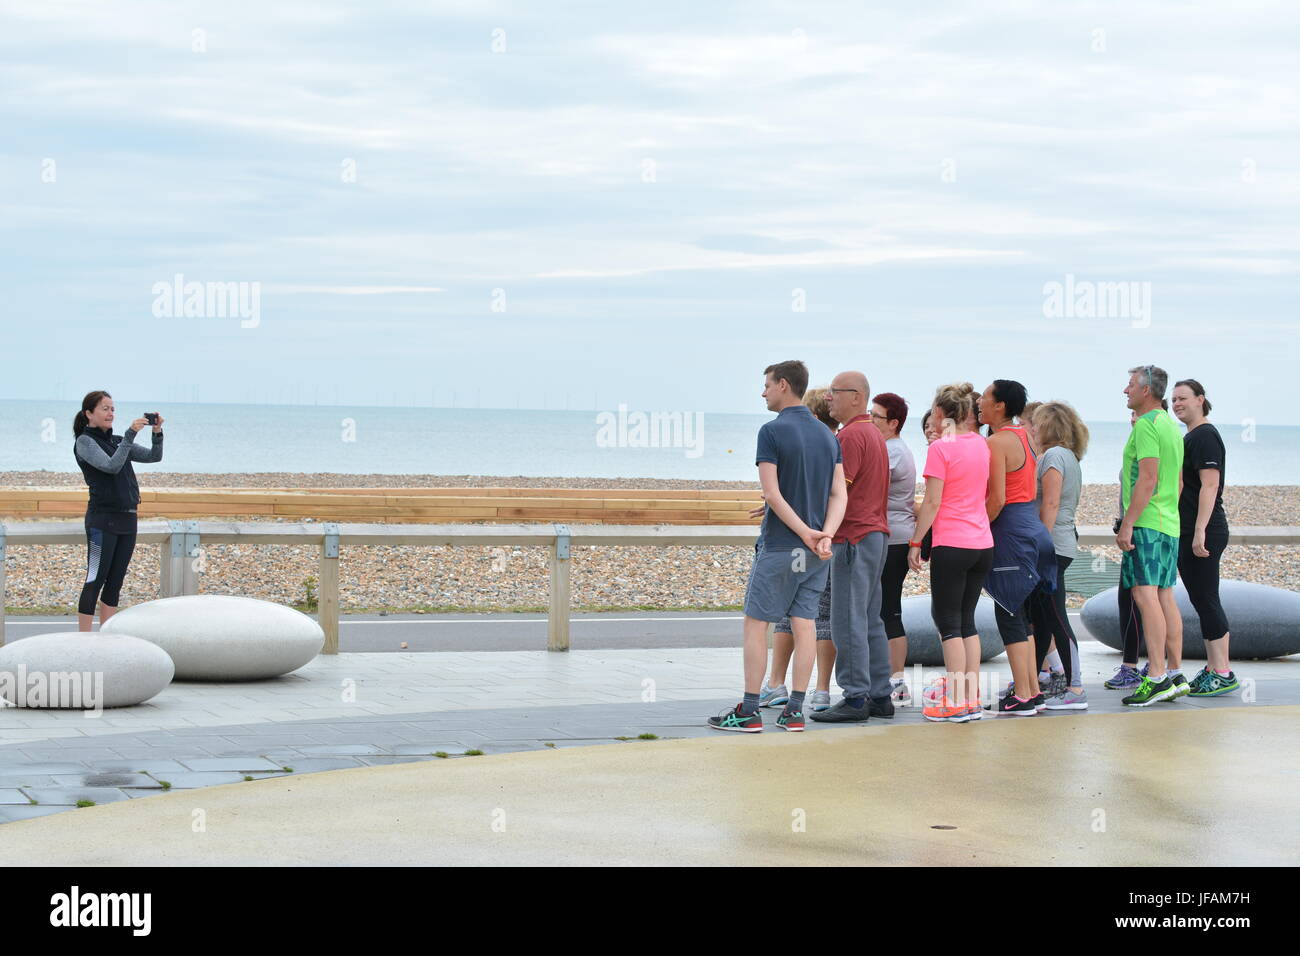 Group of people having a group photo taken. - Stock Image